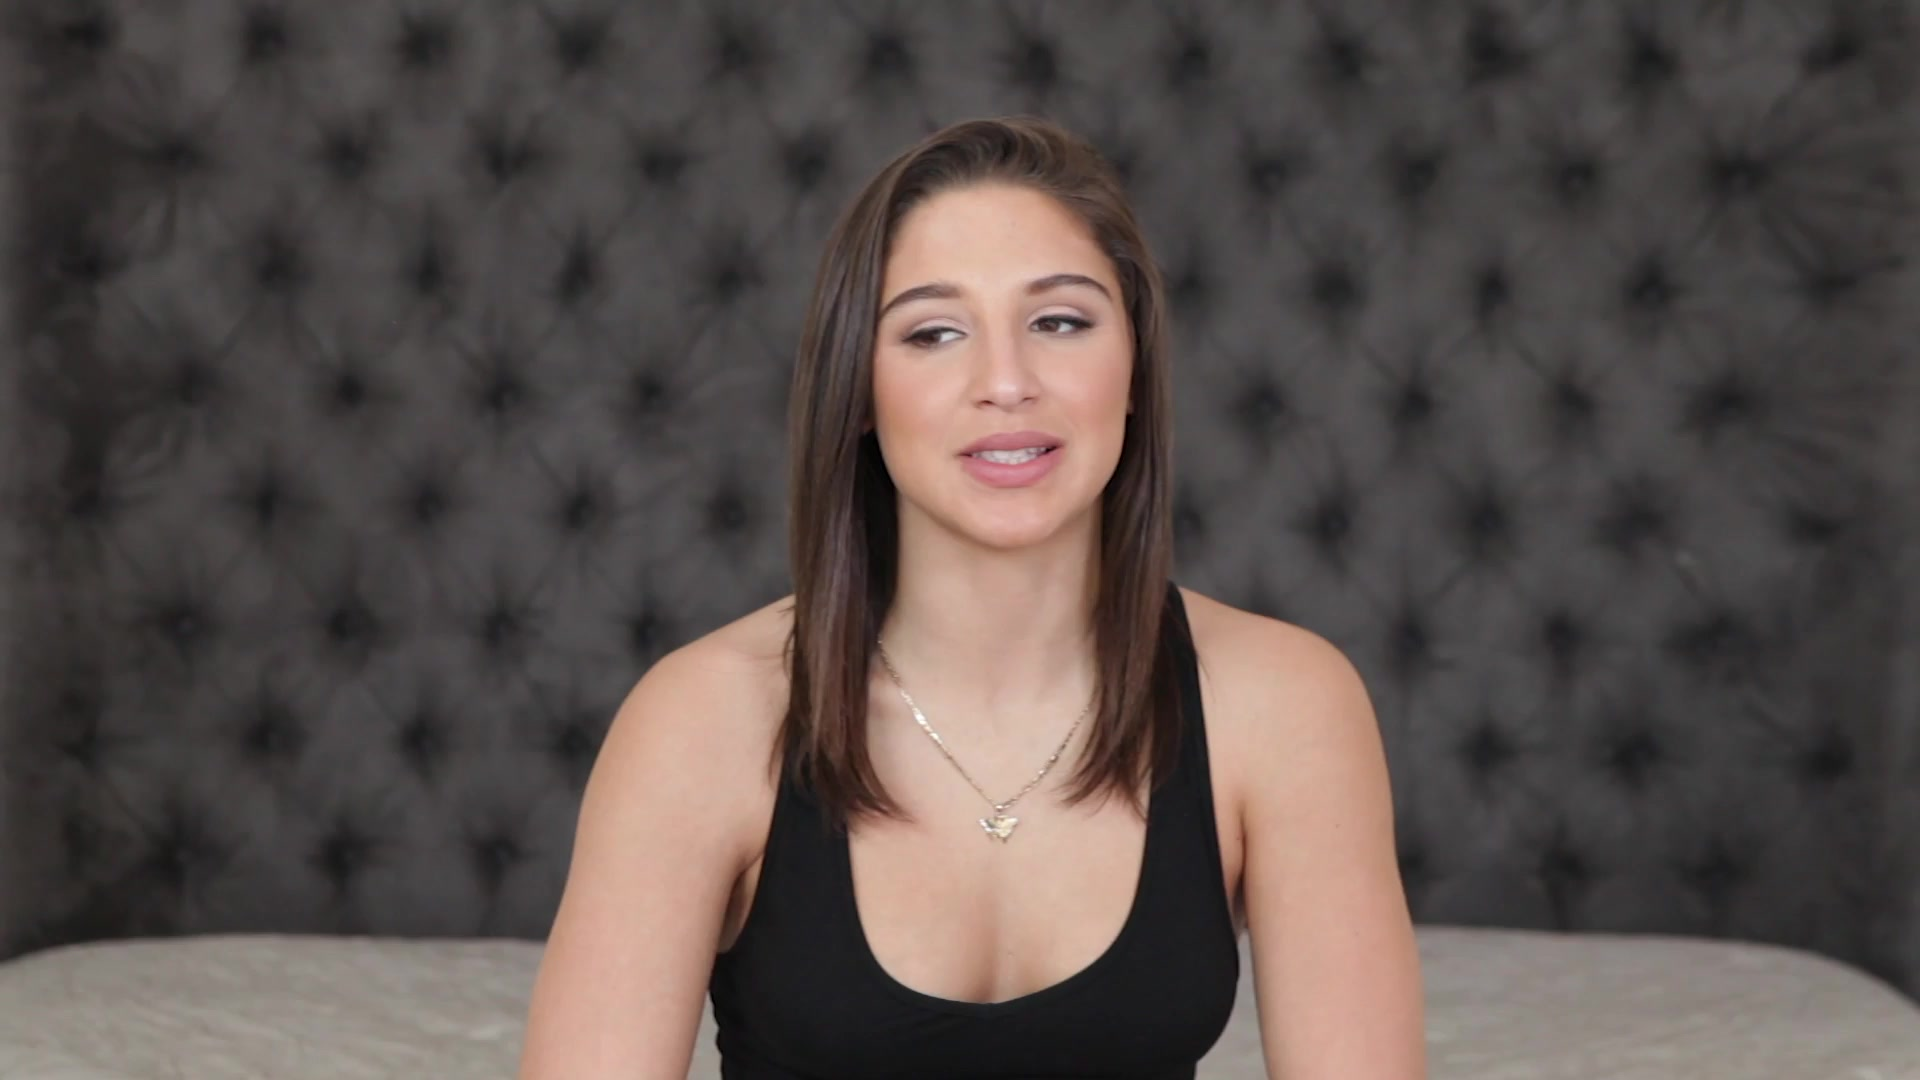 Scene with Abella Danger - image 17 out of 20